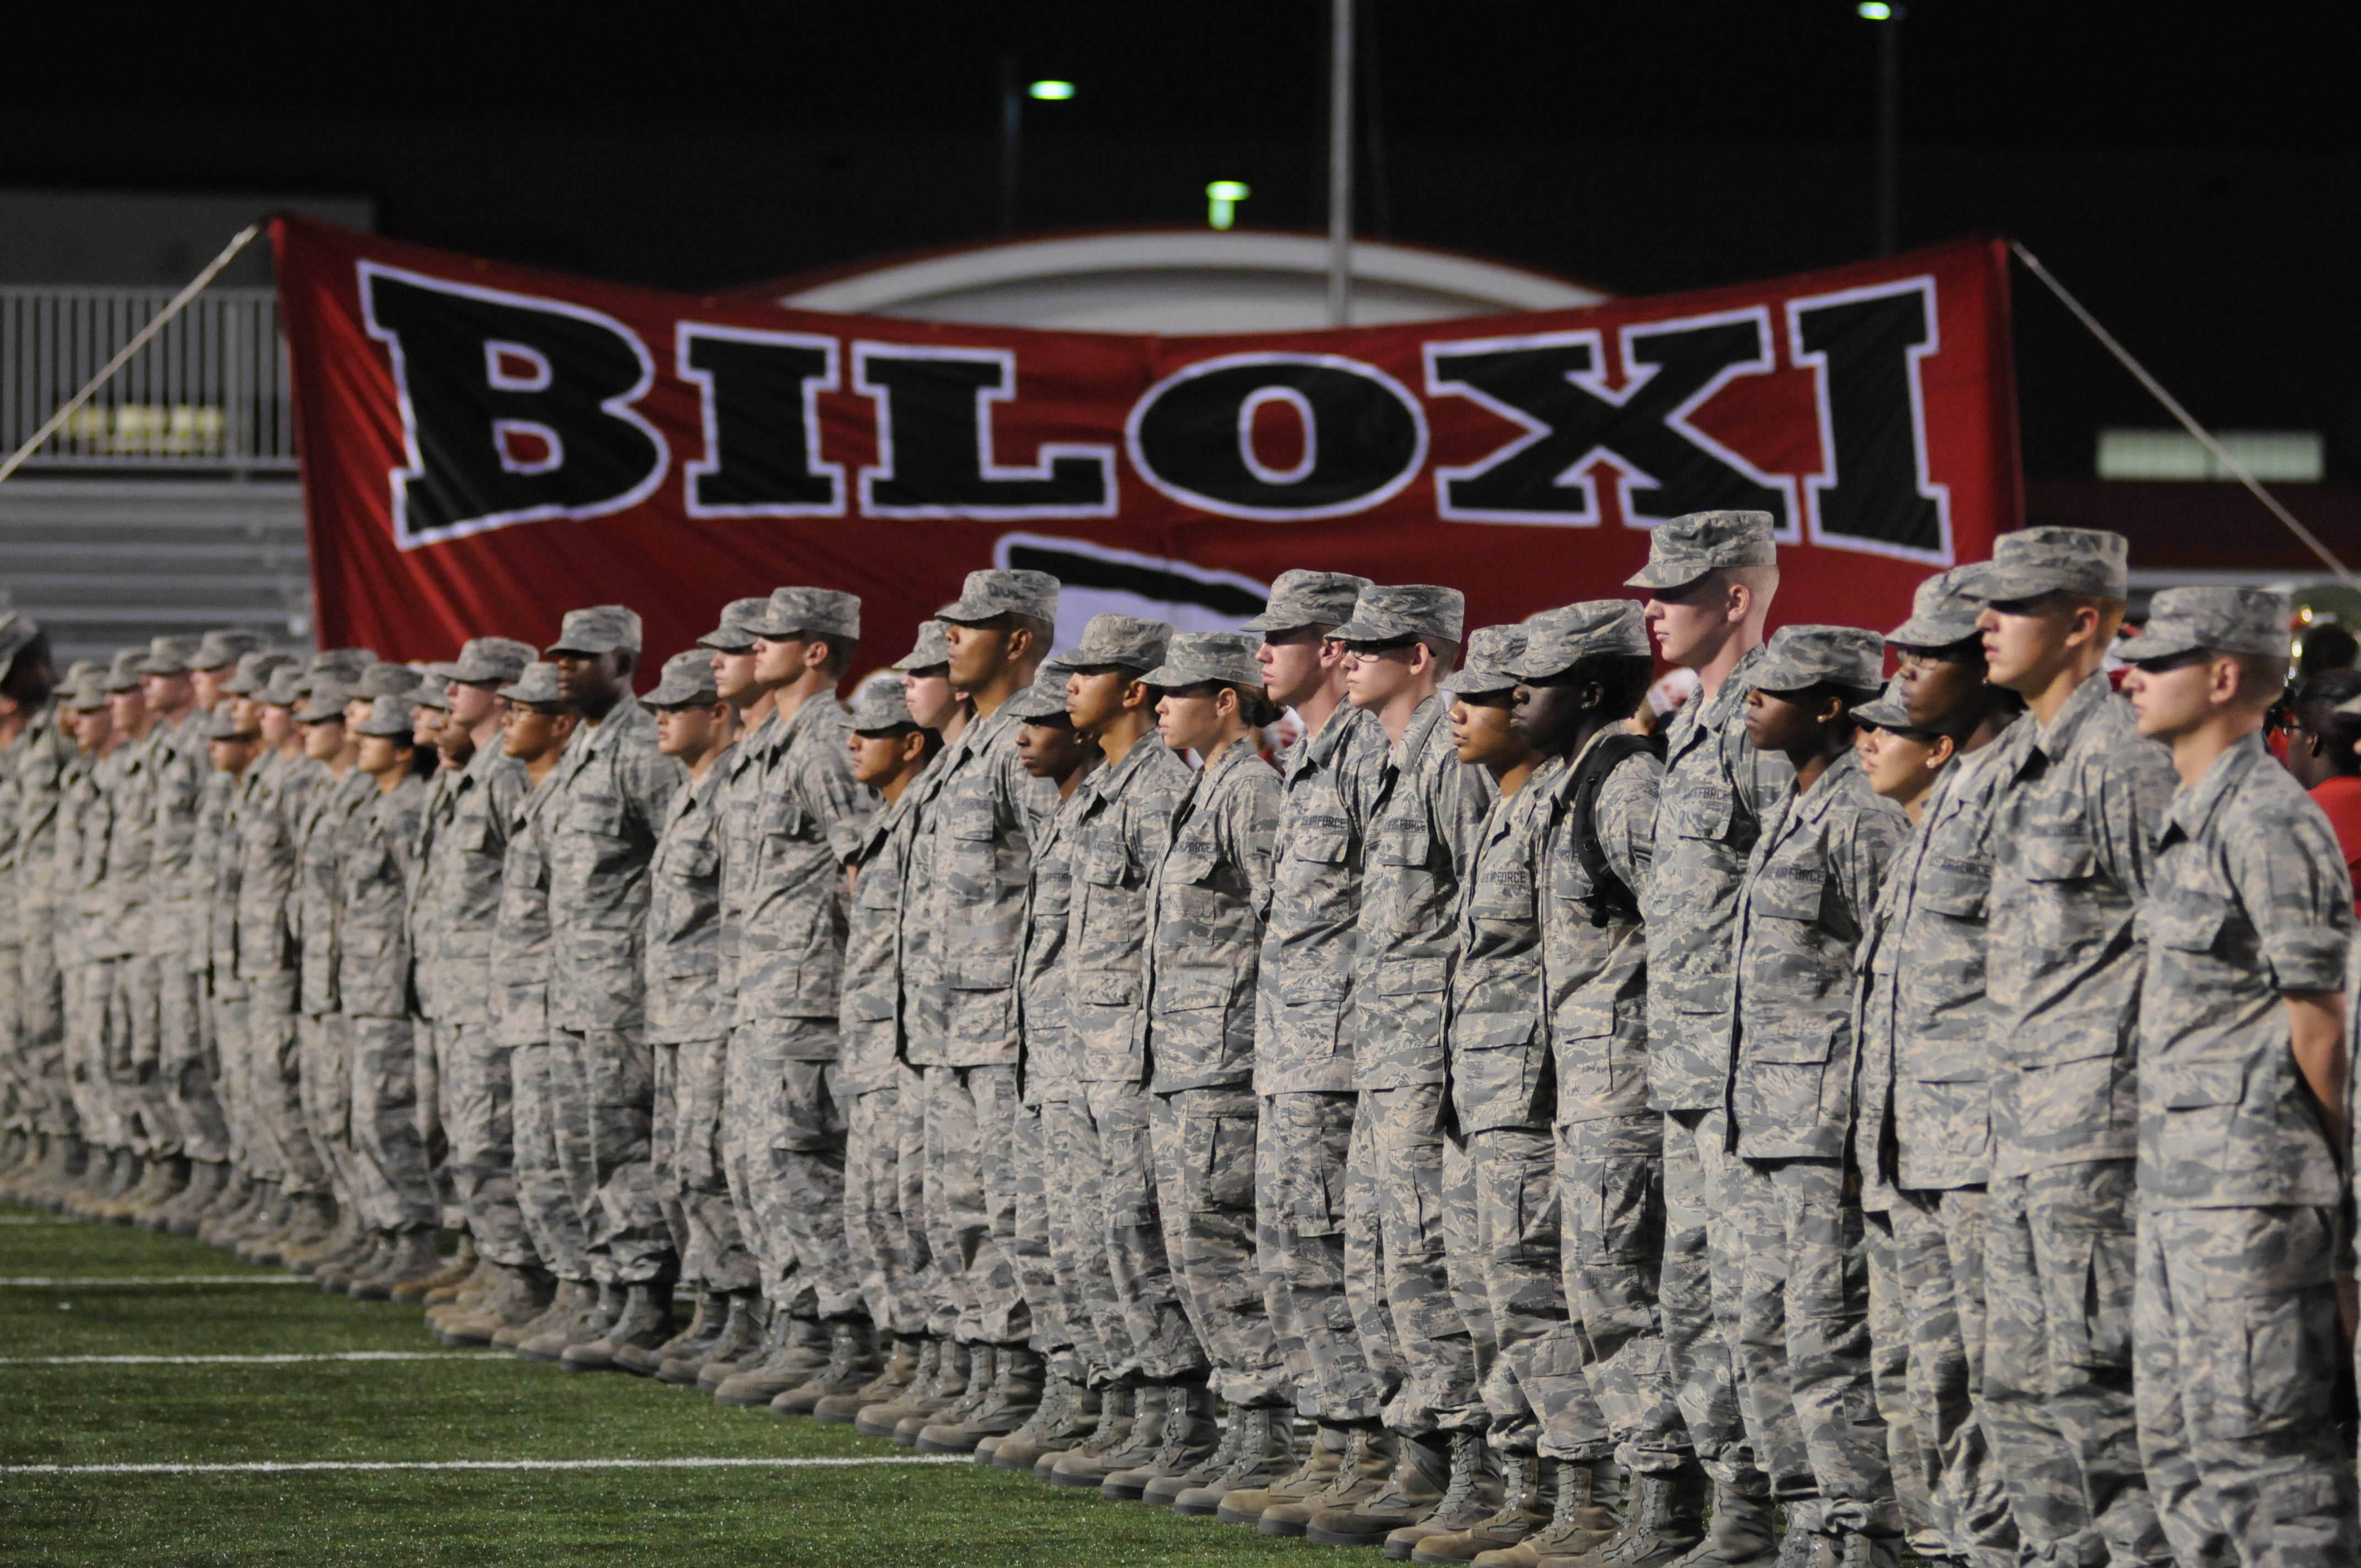 Keesler Participates In Biloxi High School Military Appreciation Night Football Game Preliminary Festivities